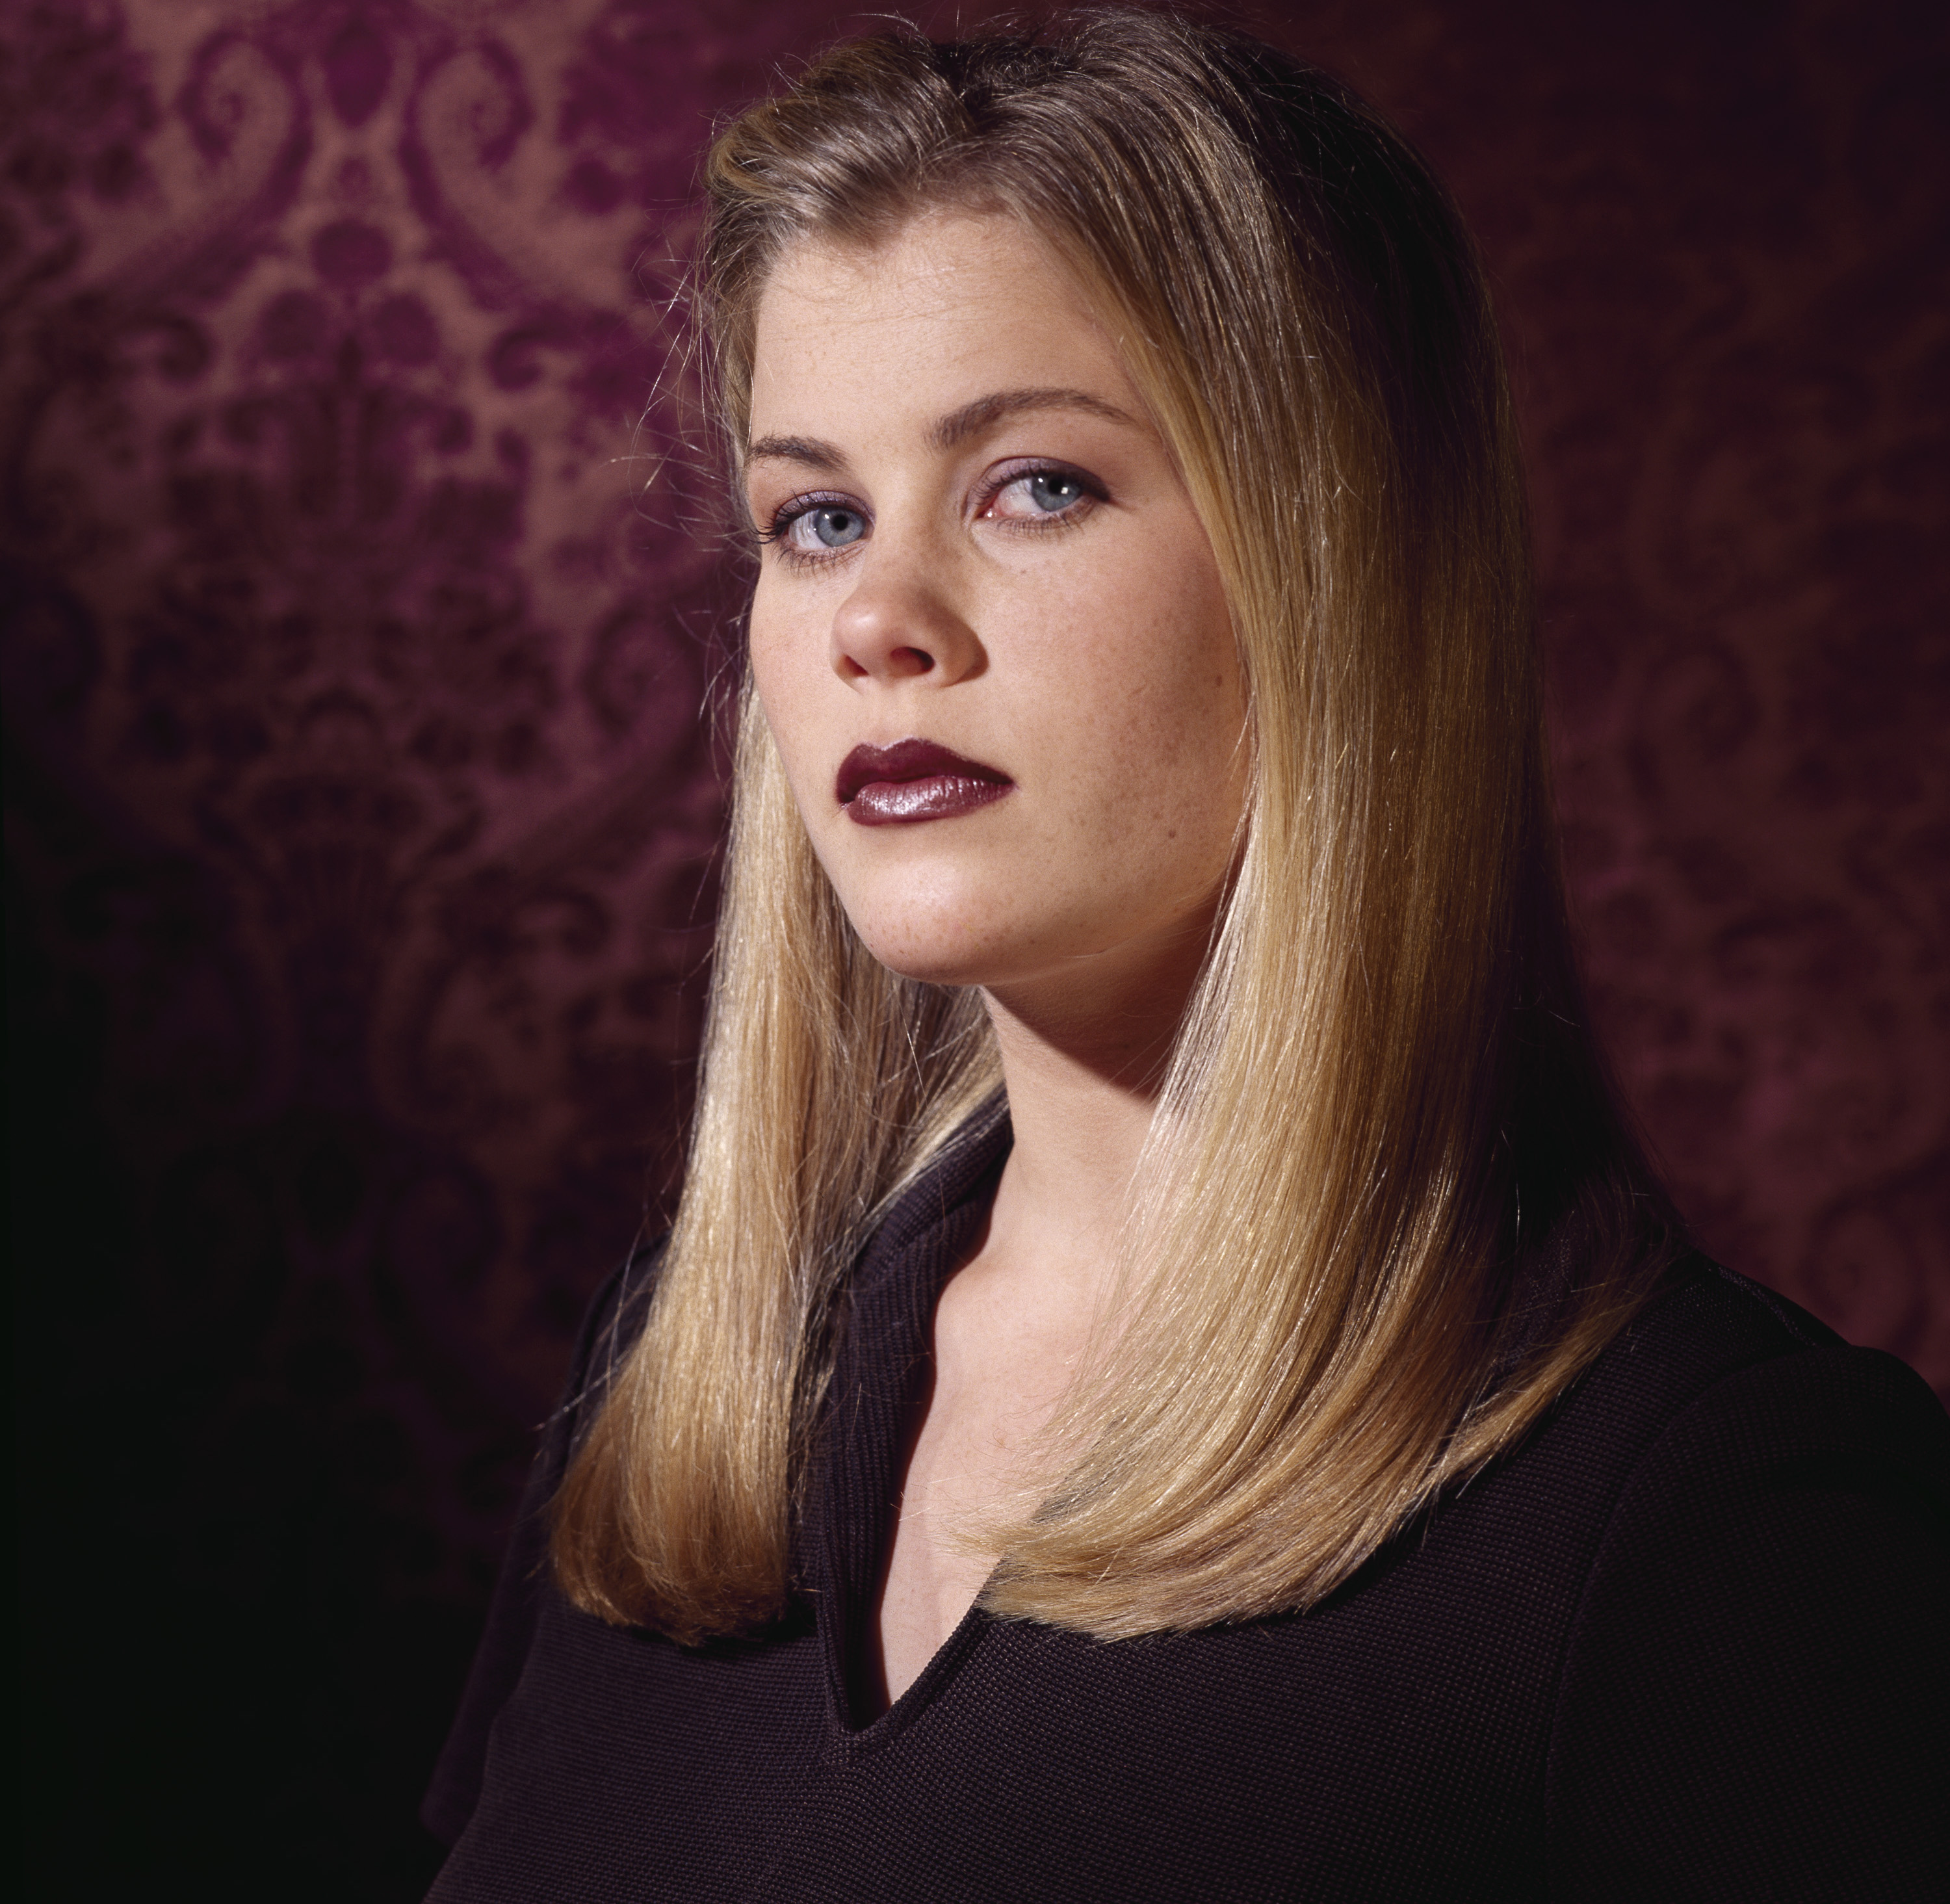 Alison Sweeney 'Days of Our Lives' Getty Images